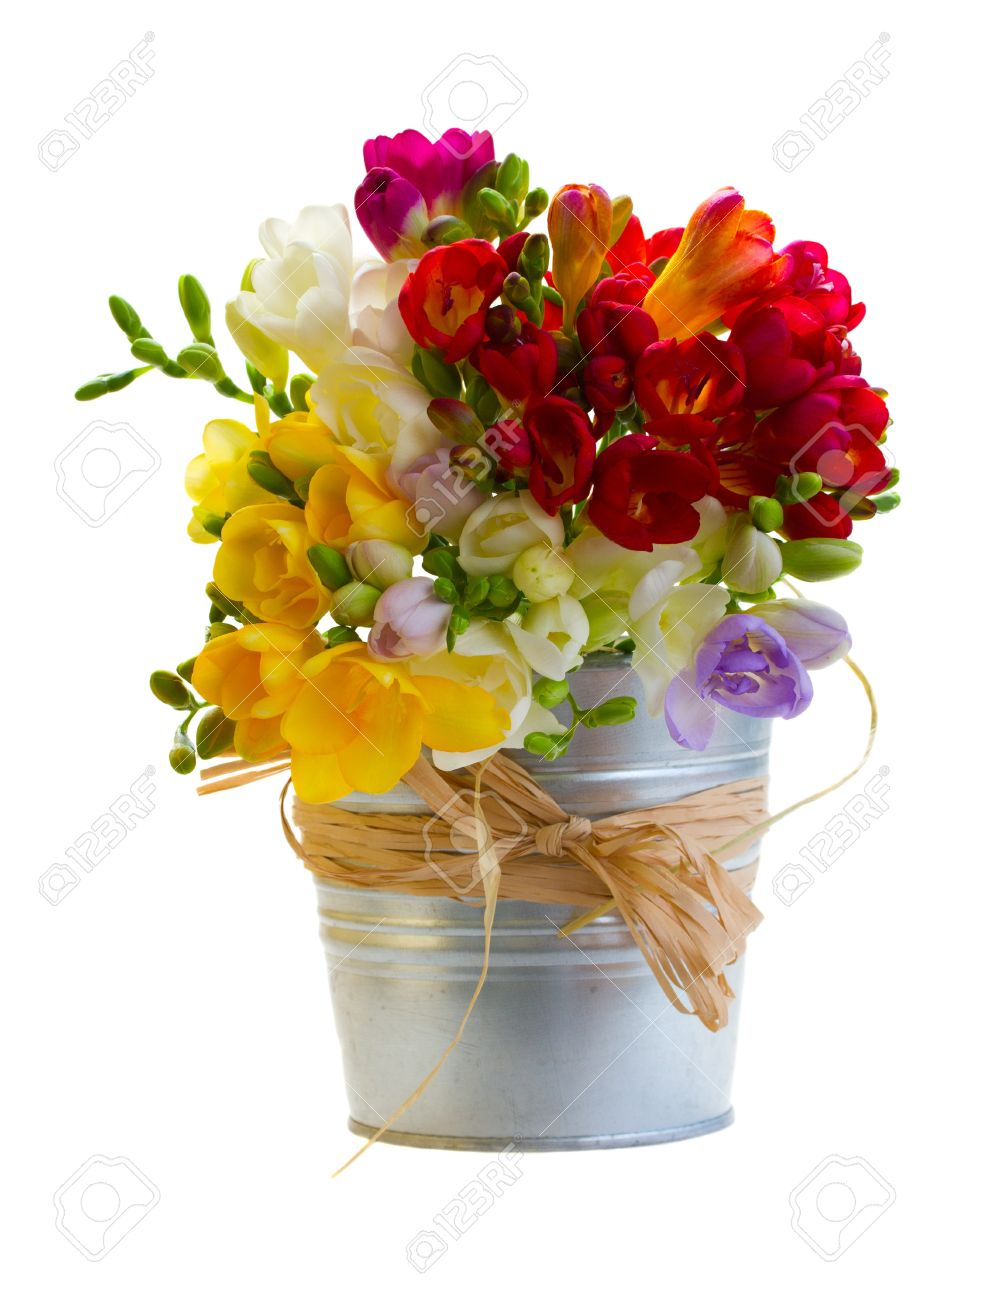 Bouquet of freesias flowers in metal pot isolated on white bouquet of freesias flowers in metal pot isolated on white background stock photo 19450745 izmirmasajfo